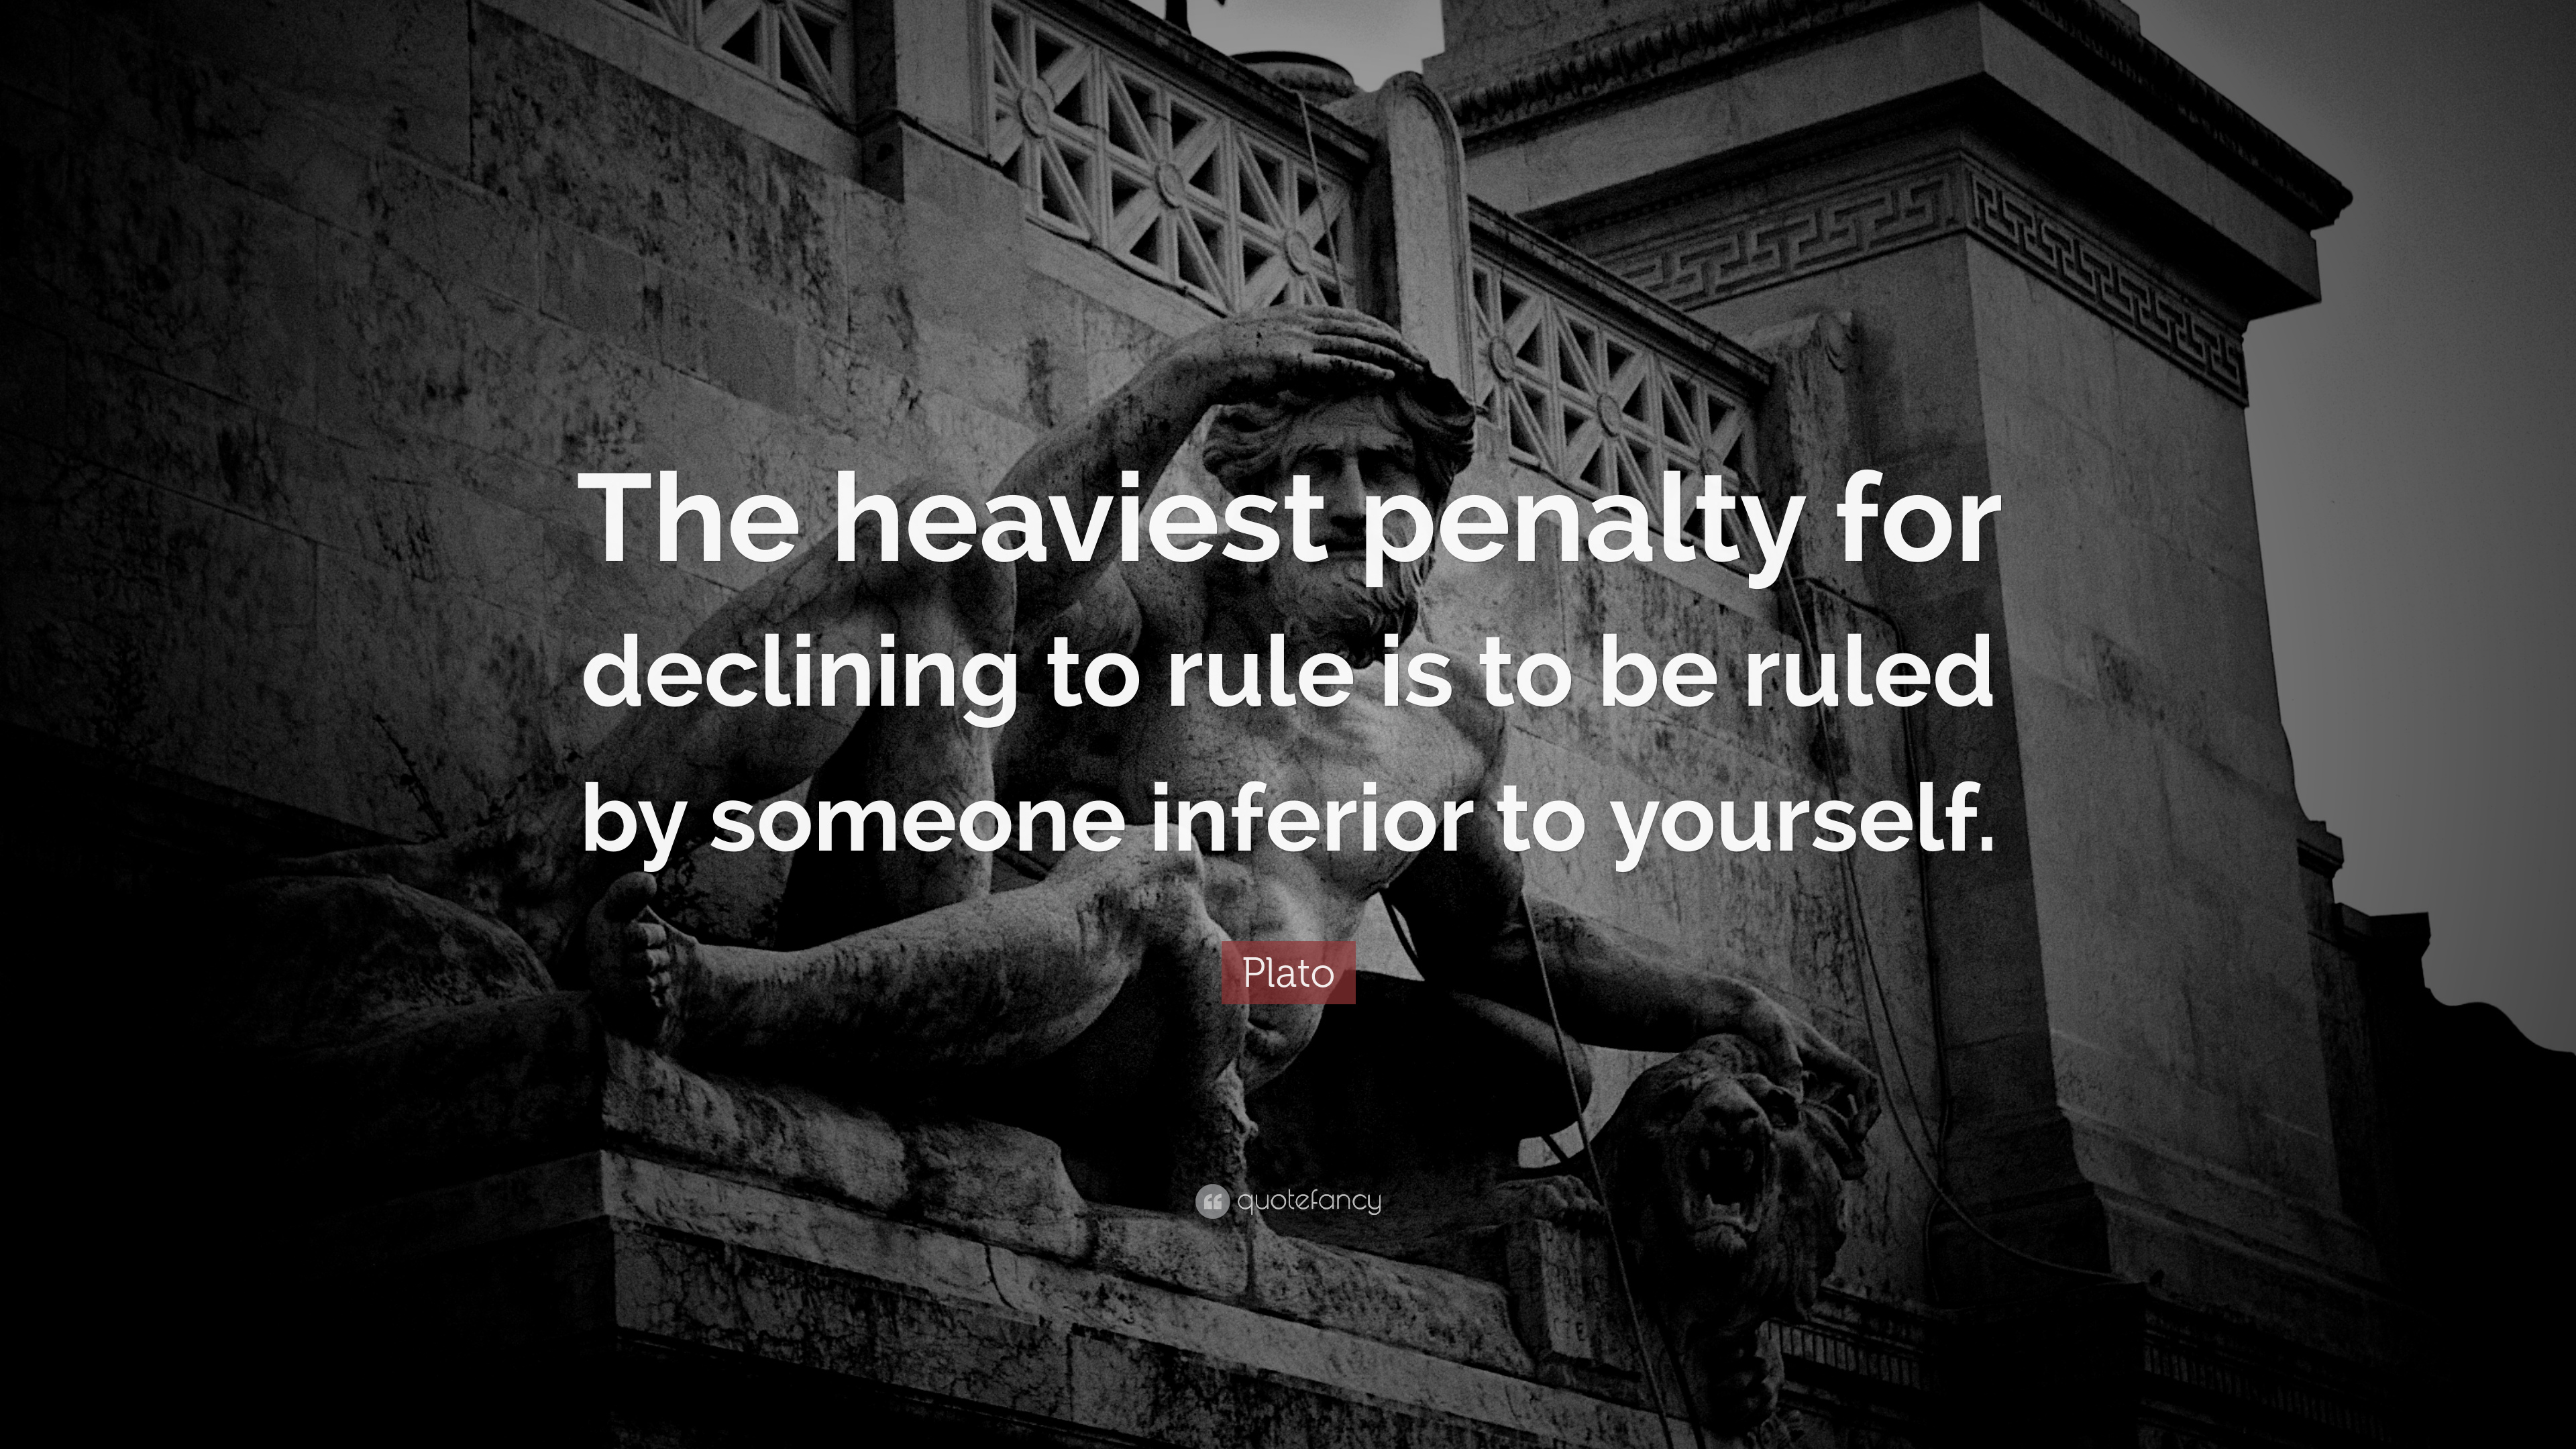 """The heaviest penalty for declining to rule is to be ruled by someone inferior to yourself."" ― Plato,(1200×850)"